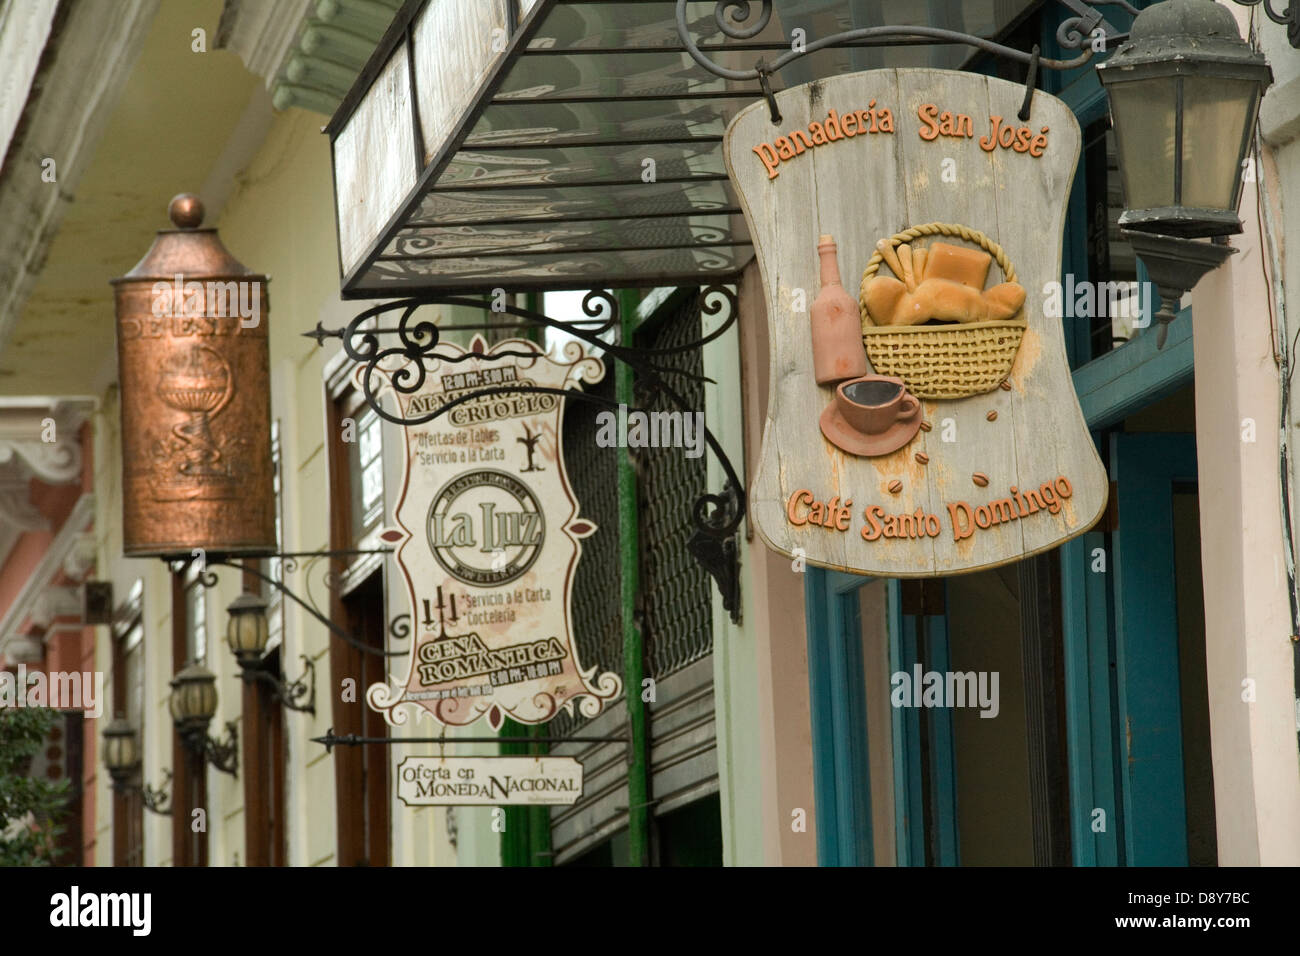 Colonial style buildings in the old Havana with old signs advertizing shops and cafes.  Panaderia San Jose Cafe - Stock Image